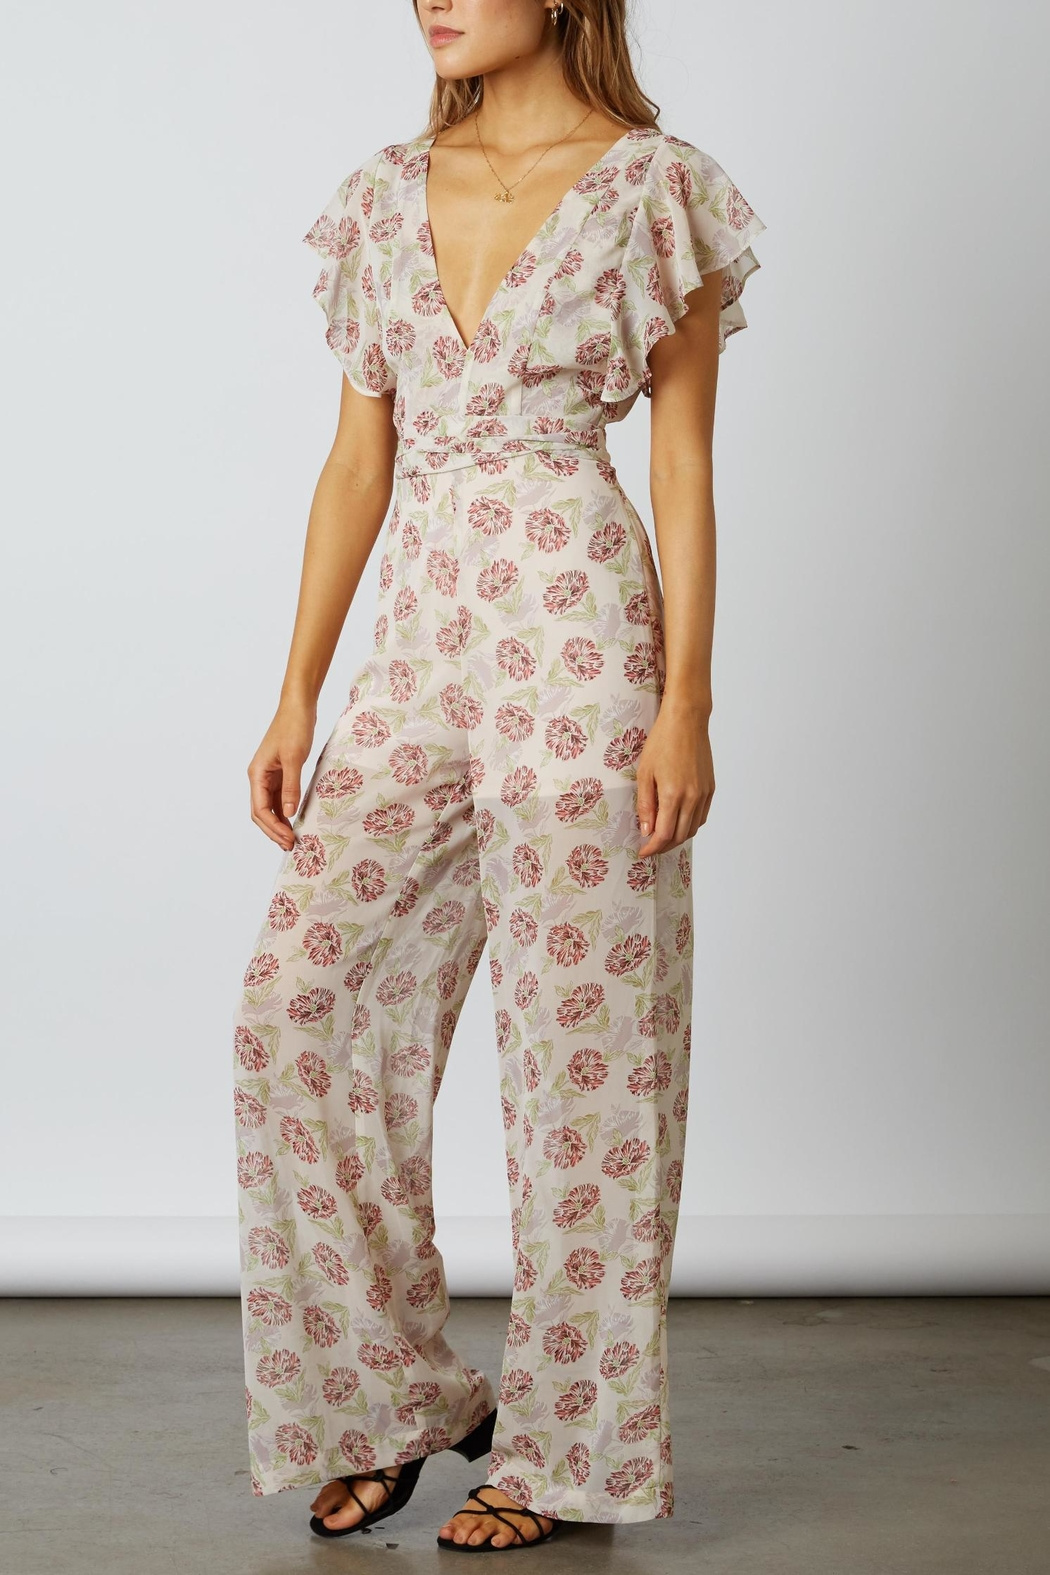 Cotton Candy LA Floral Chiffon Jumpsuit - Back Cropped Image